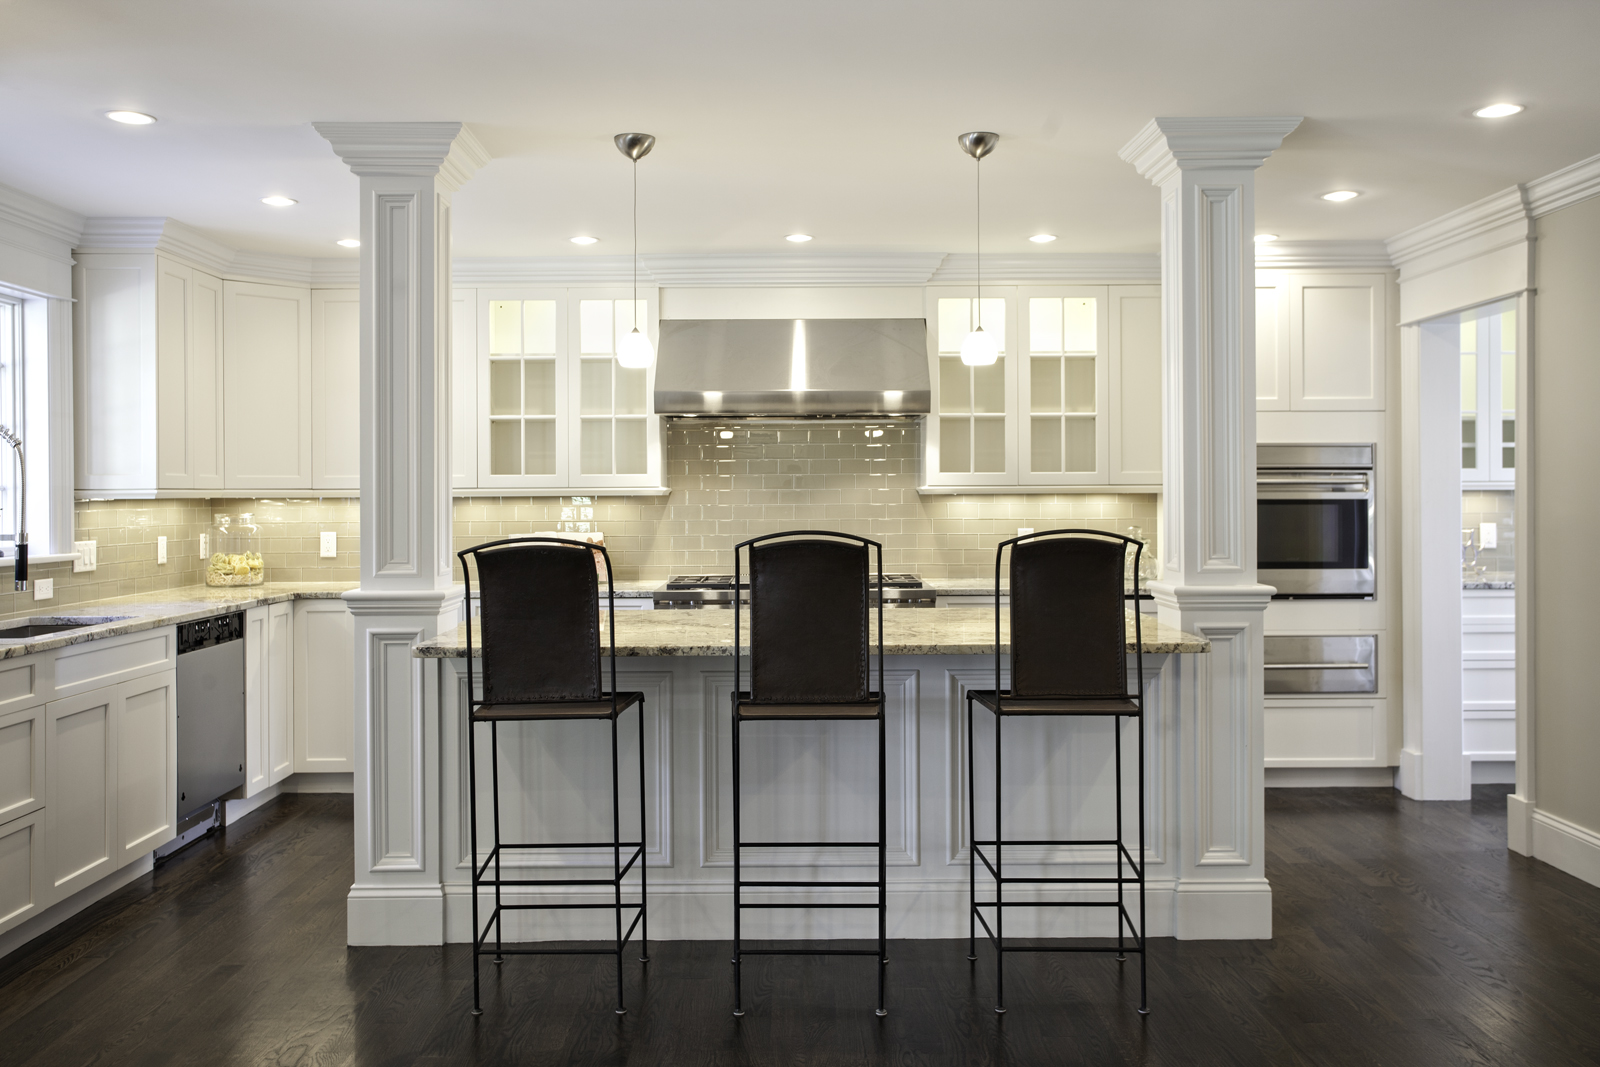 remodel works bath & kitchen accessories and remodeling project gallery srb